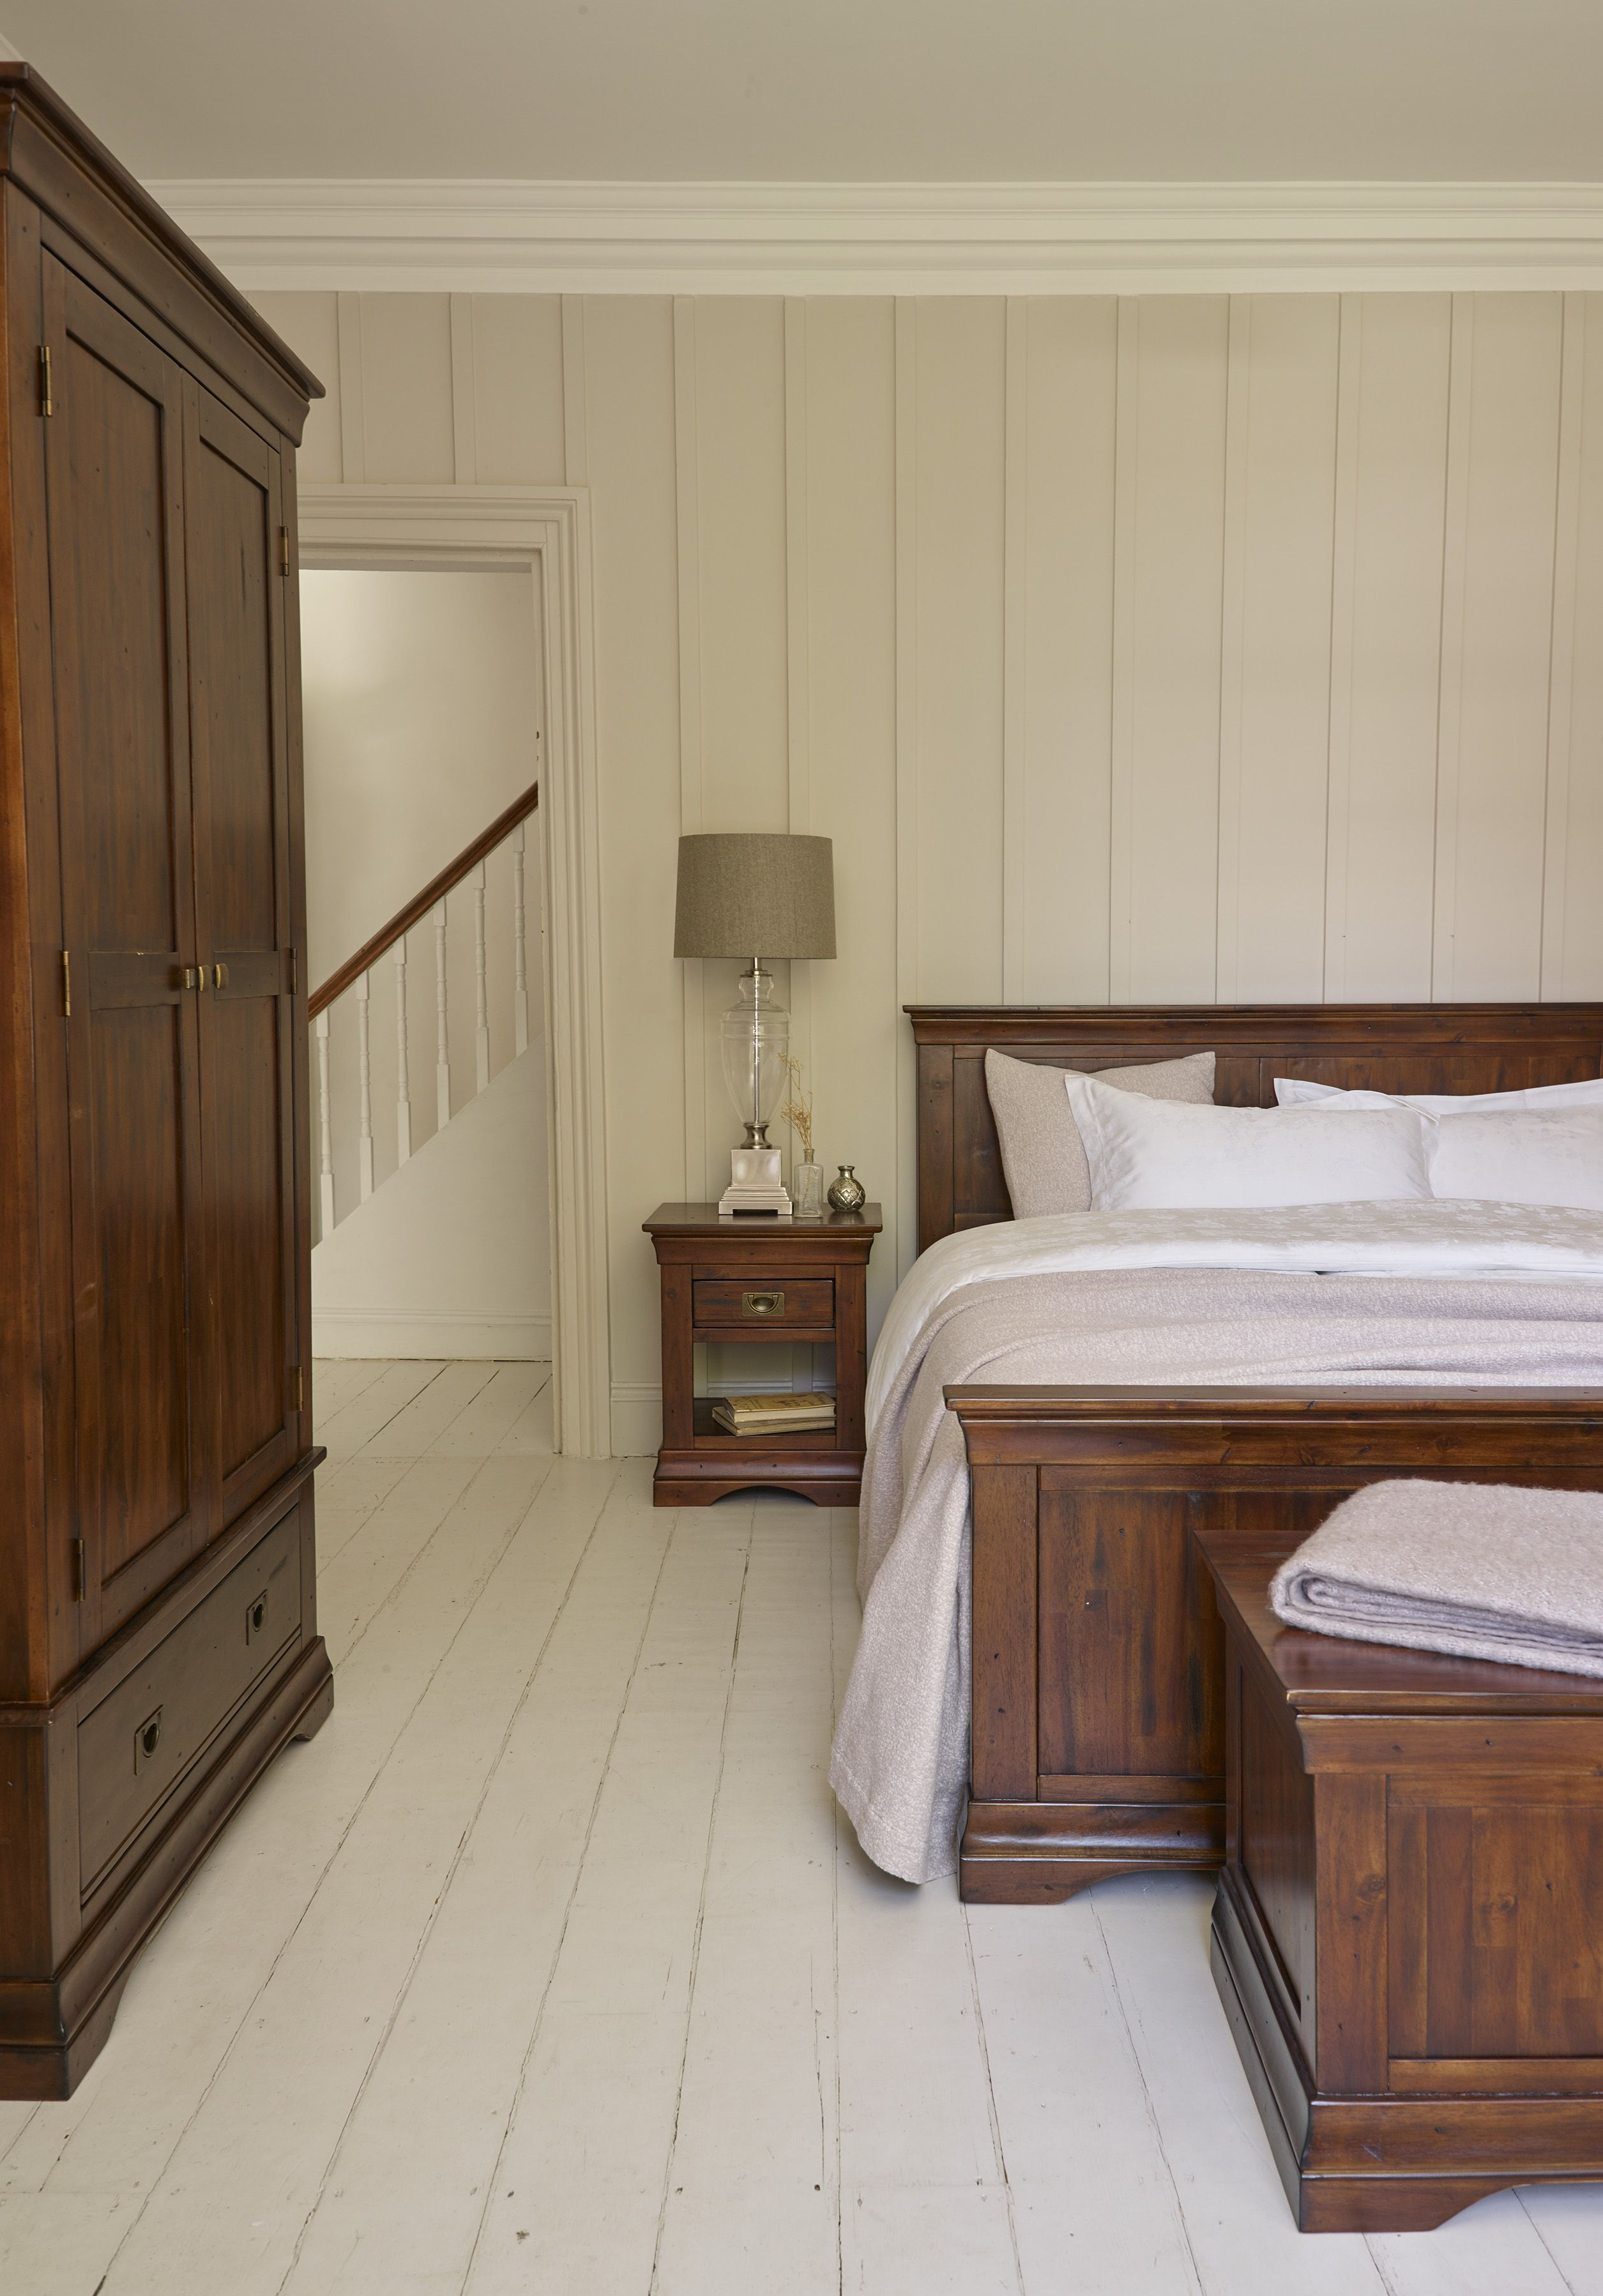 The largest bed in the victoria range with panelled headboard and